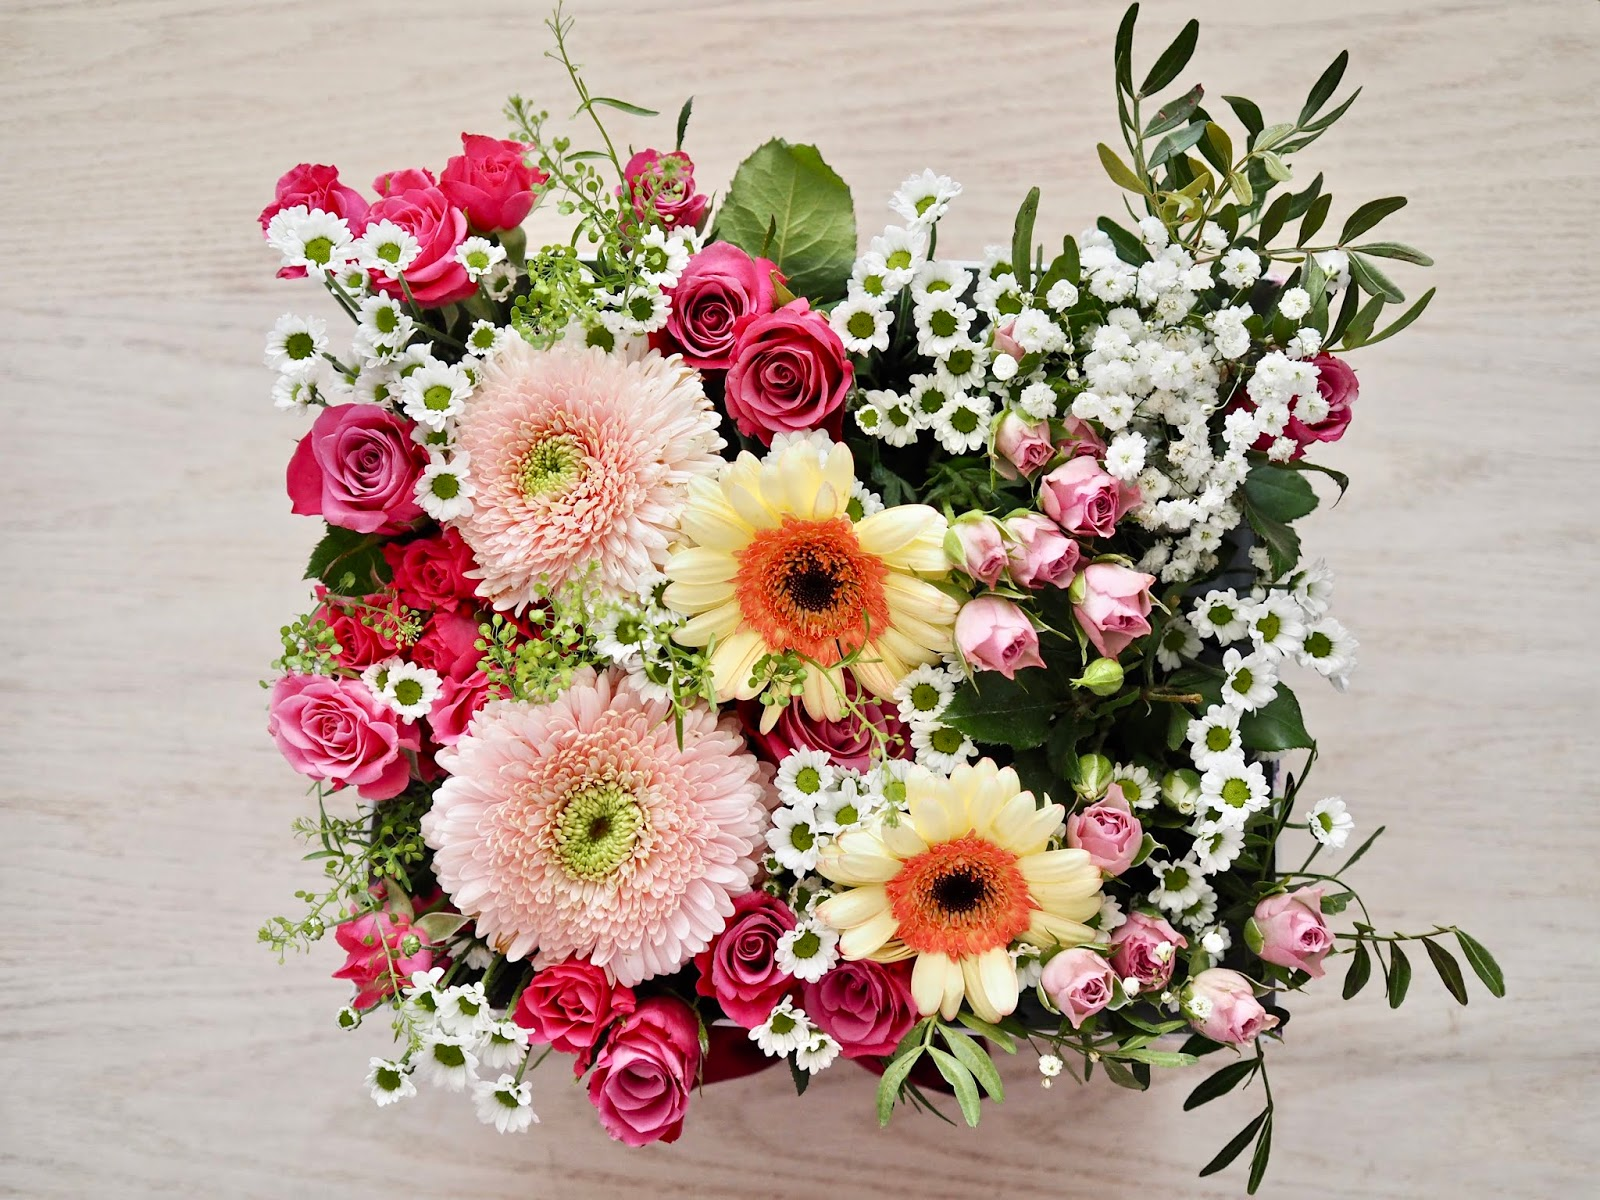 Diy flower bouquet box the dainty dress diaries these flower boxes make amazing presents and you can save your pennies and reuse an old hat box that you might already have for the cost of some oasis and izmirmasajfo